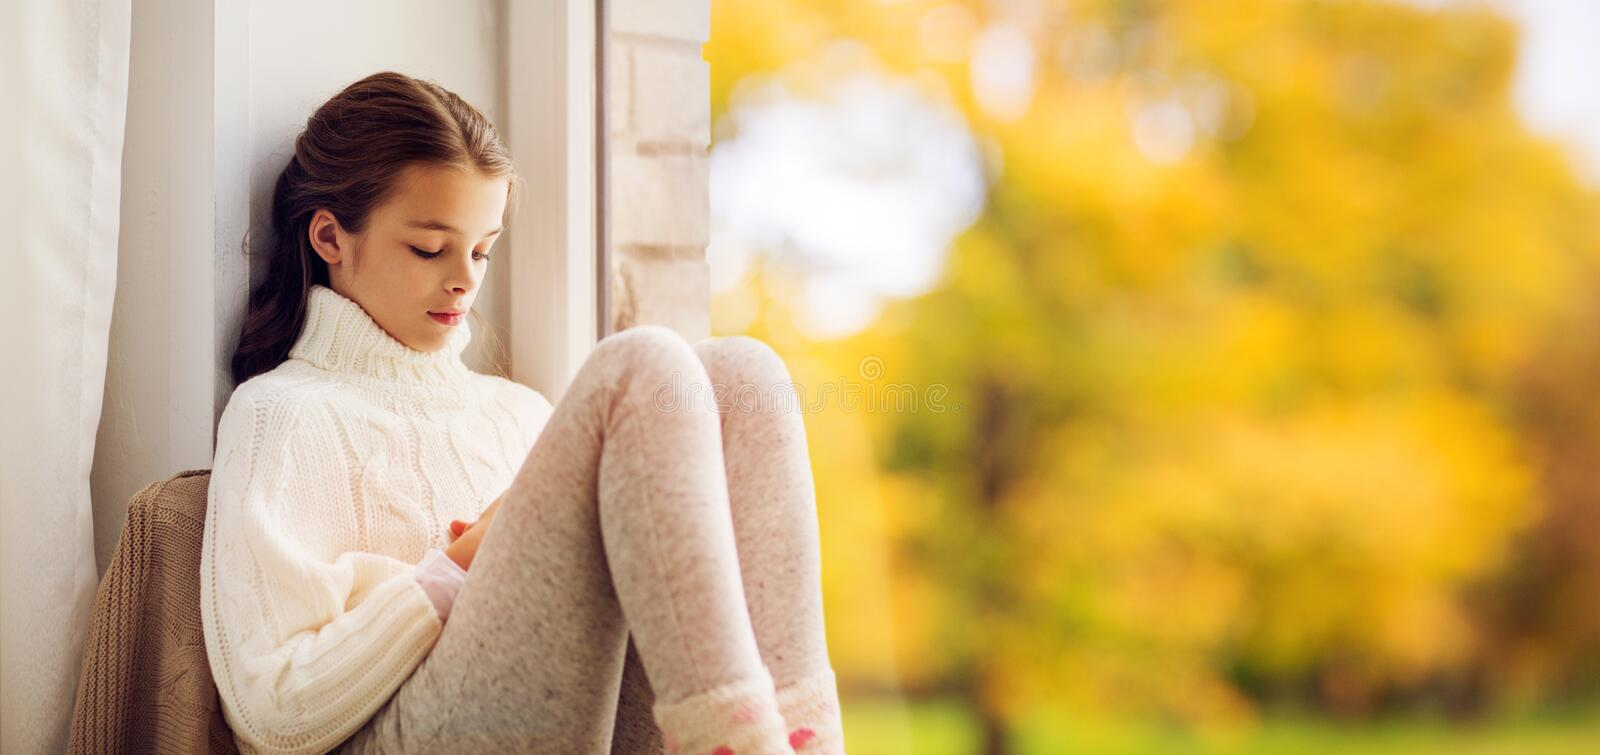 Sad girl sitting on sill at home window in autumn stock image